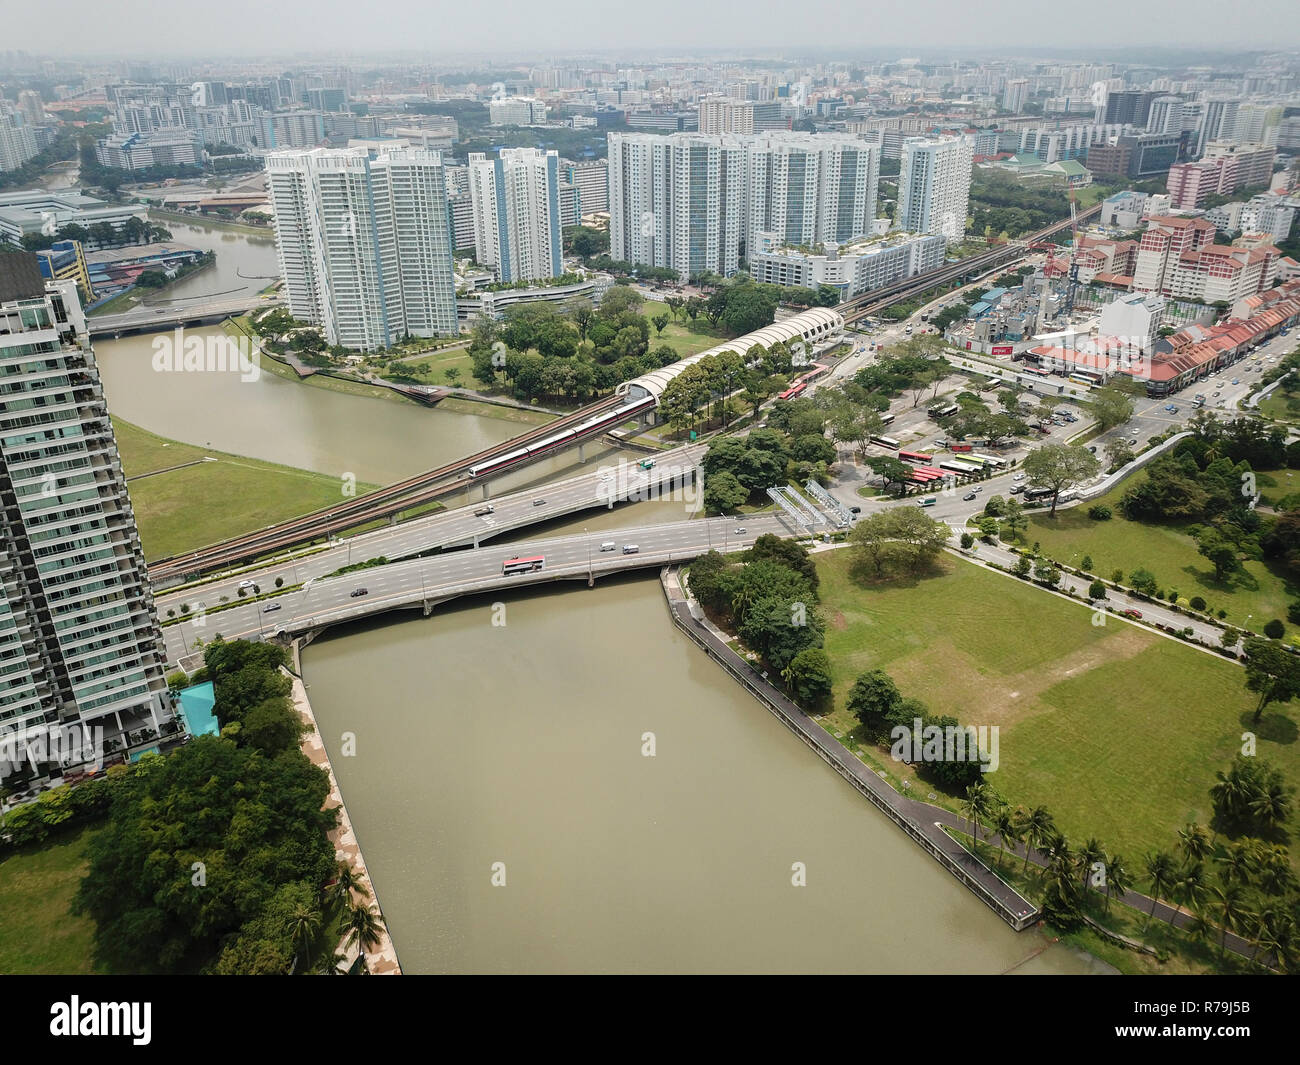 Drone aerial landscape of the Kallang River and surrounding buildings, captured at Kallang, Singapore.   Image captured on 2nd April 2018. Stock Photo